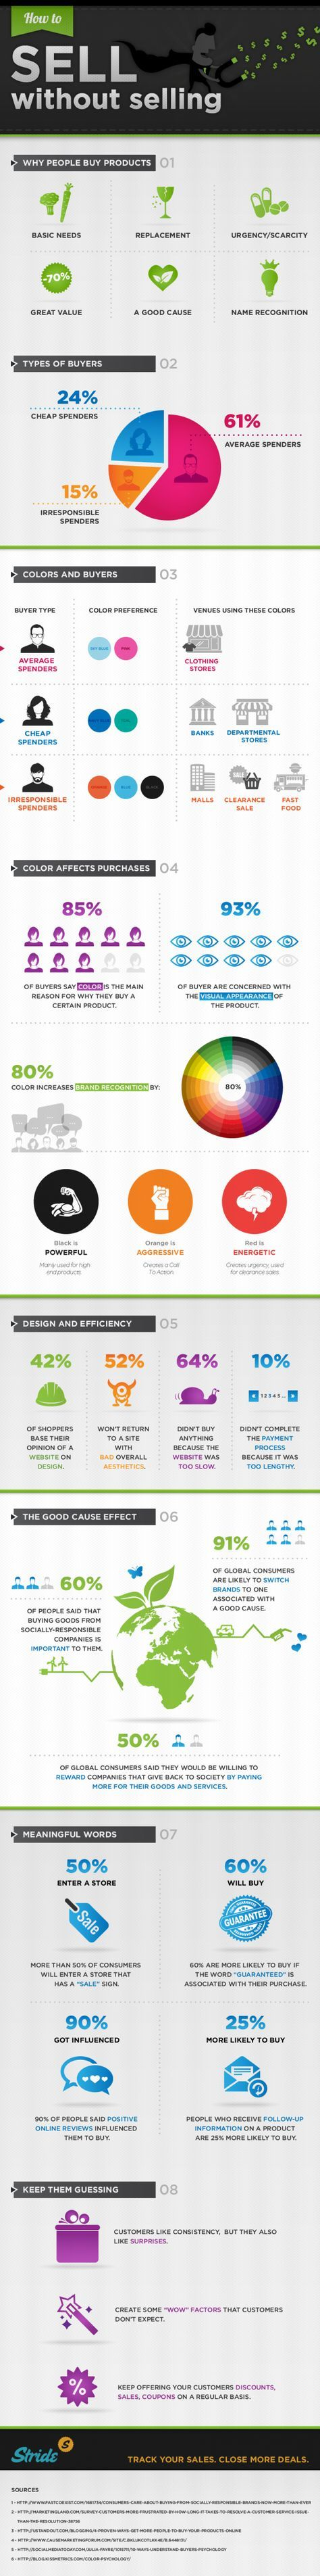 Daily Infographic | A New Infographic Every Day | Data Visualization, Information Design and Infographics | page 4